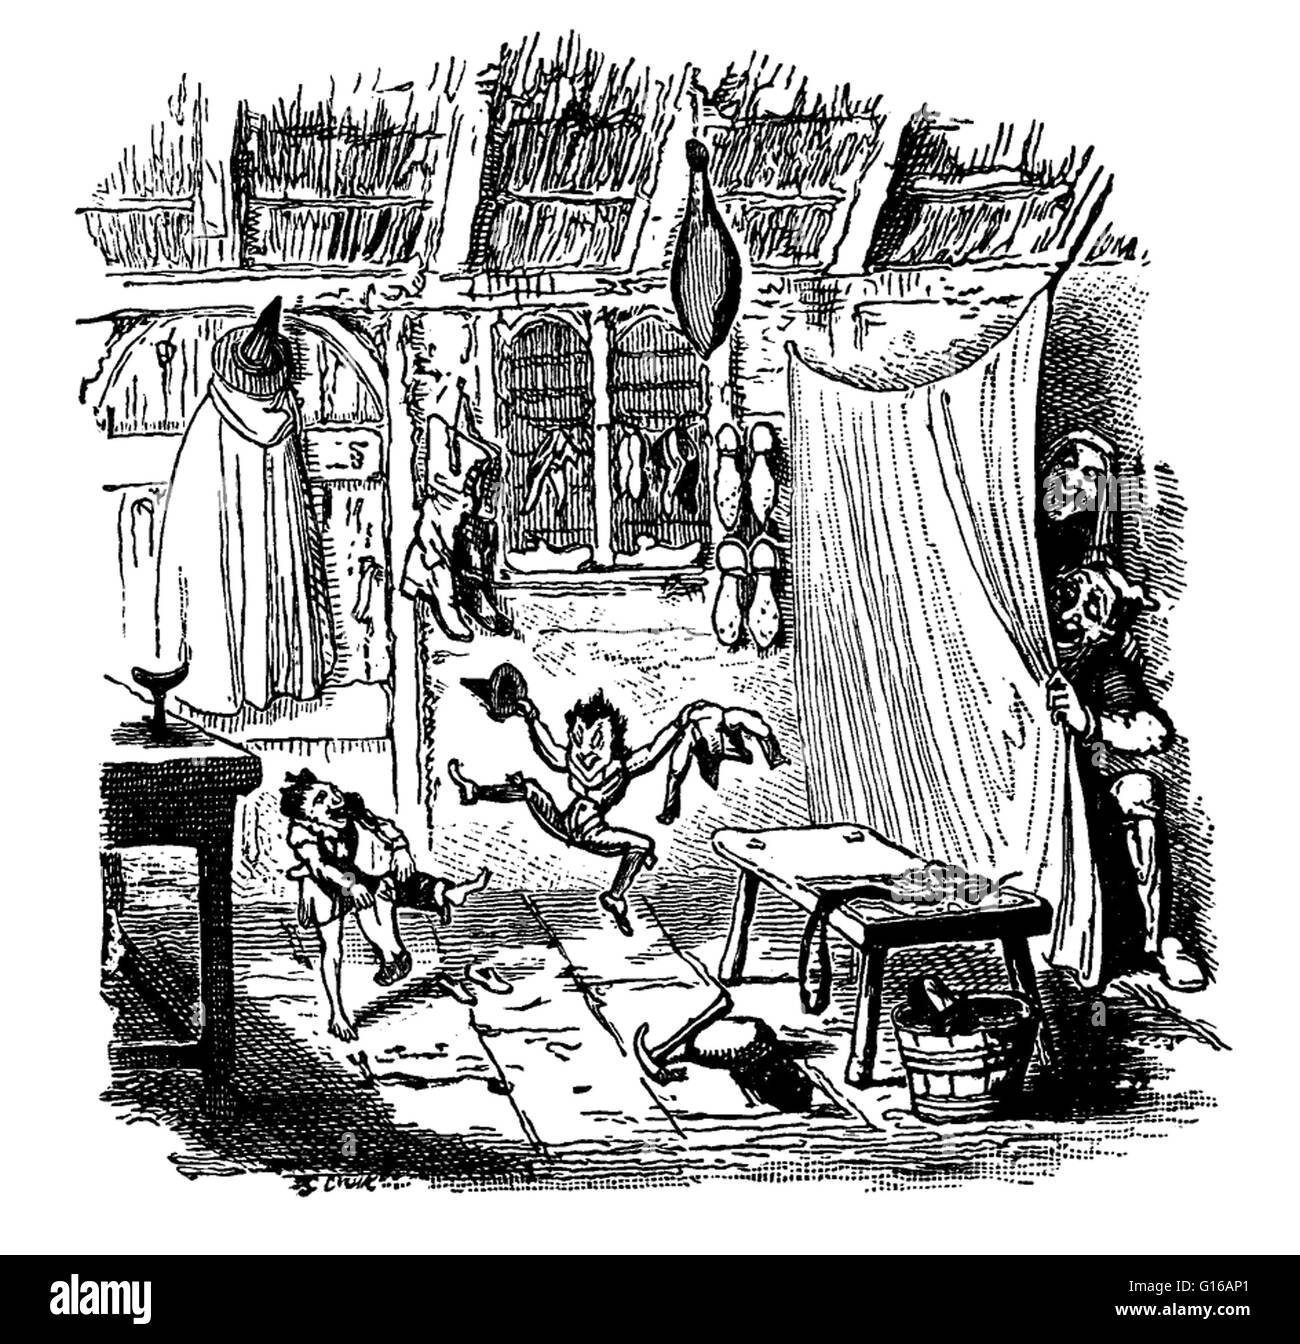 'The Elves and the Shoemaker' is an often copied and re-made 1806 story about a poor shoemaker who receives - Stock Image